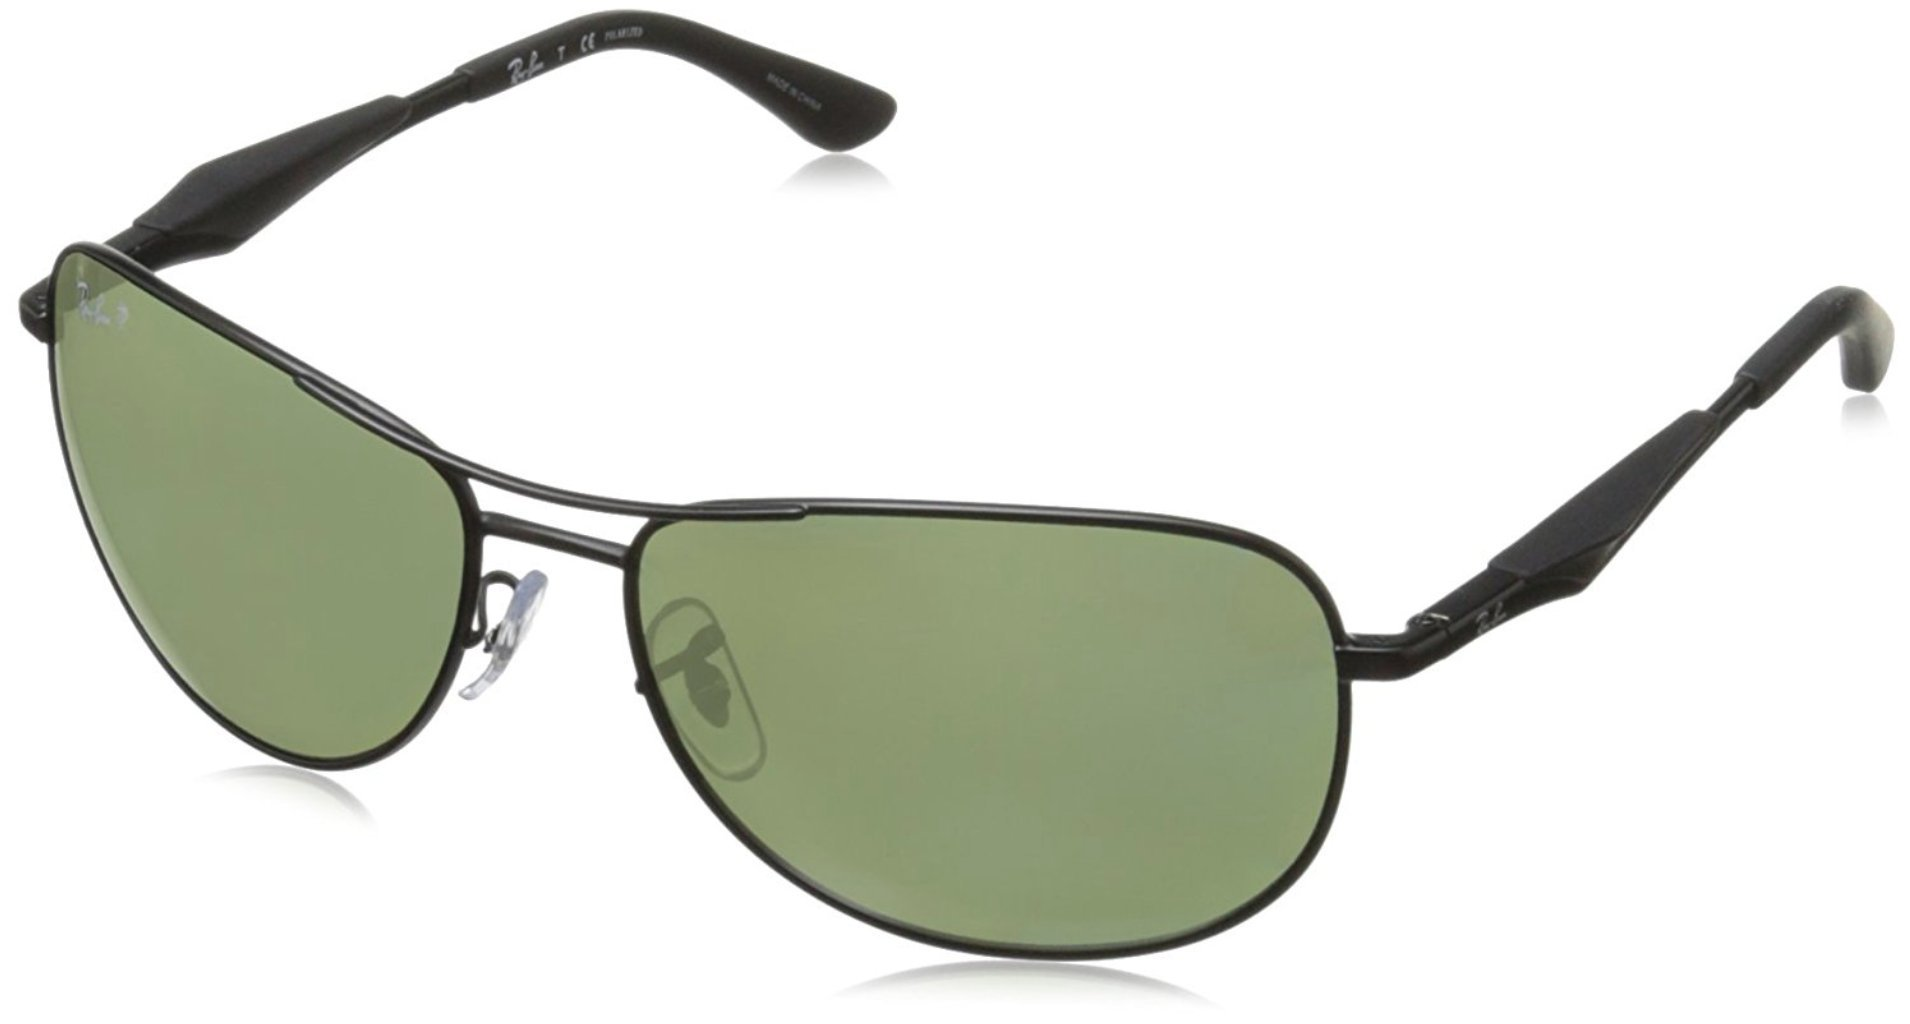 RAY-BAN RB3519 Aviator Sunglasses, Matte Black/Polarized Green, 59 mm by RAY-BAN